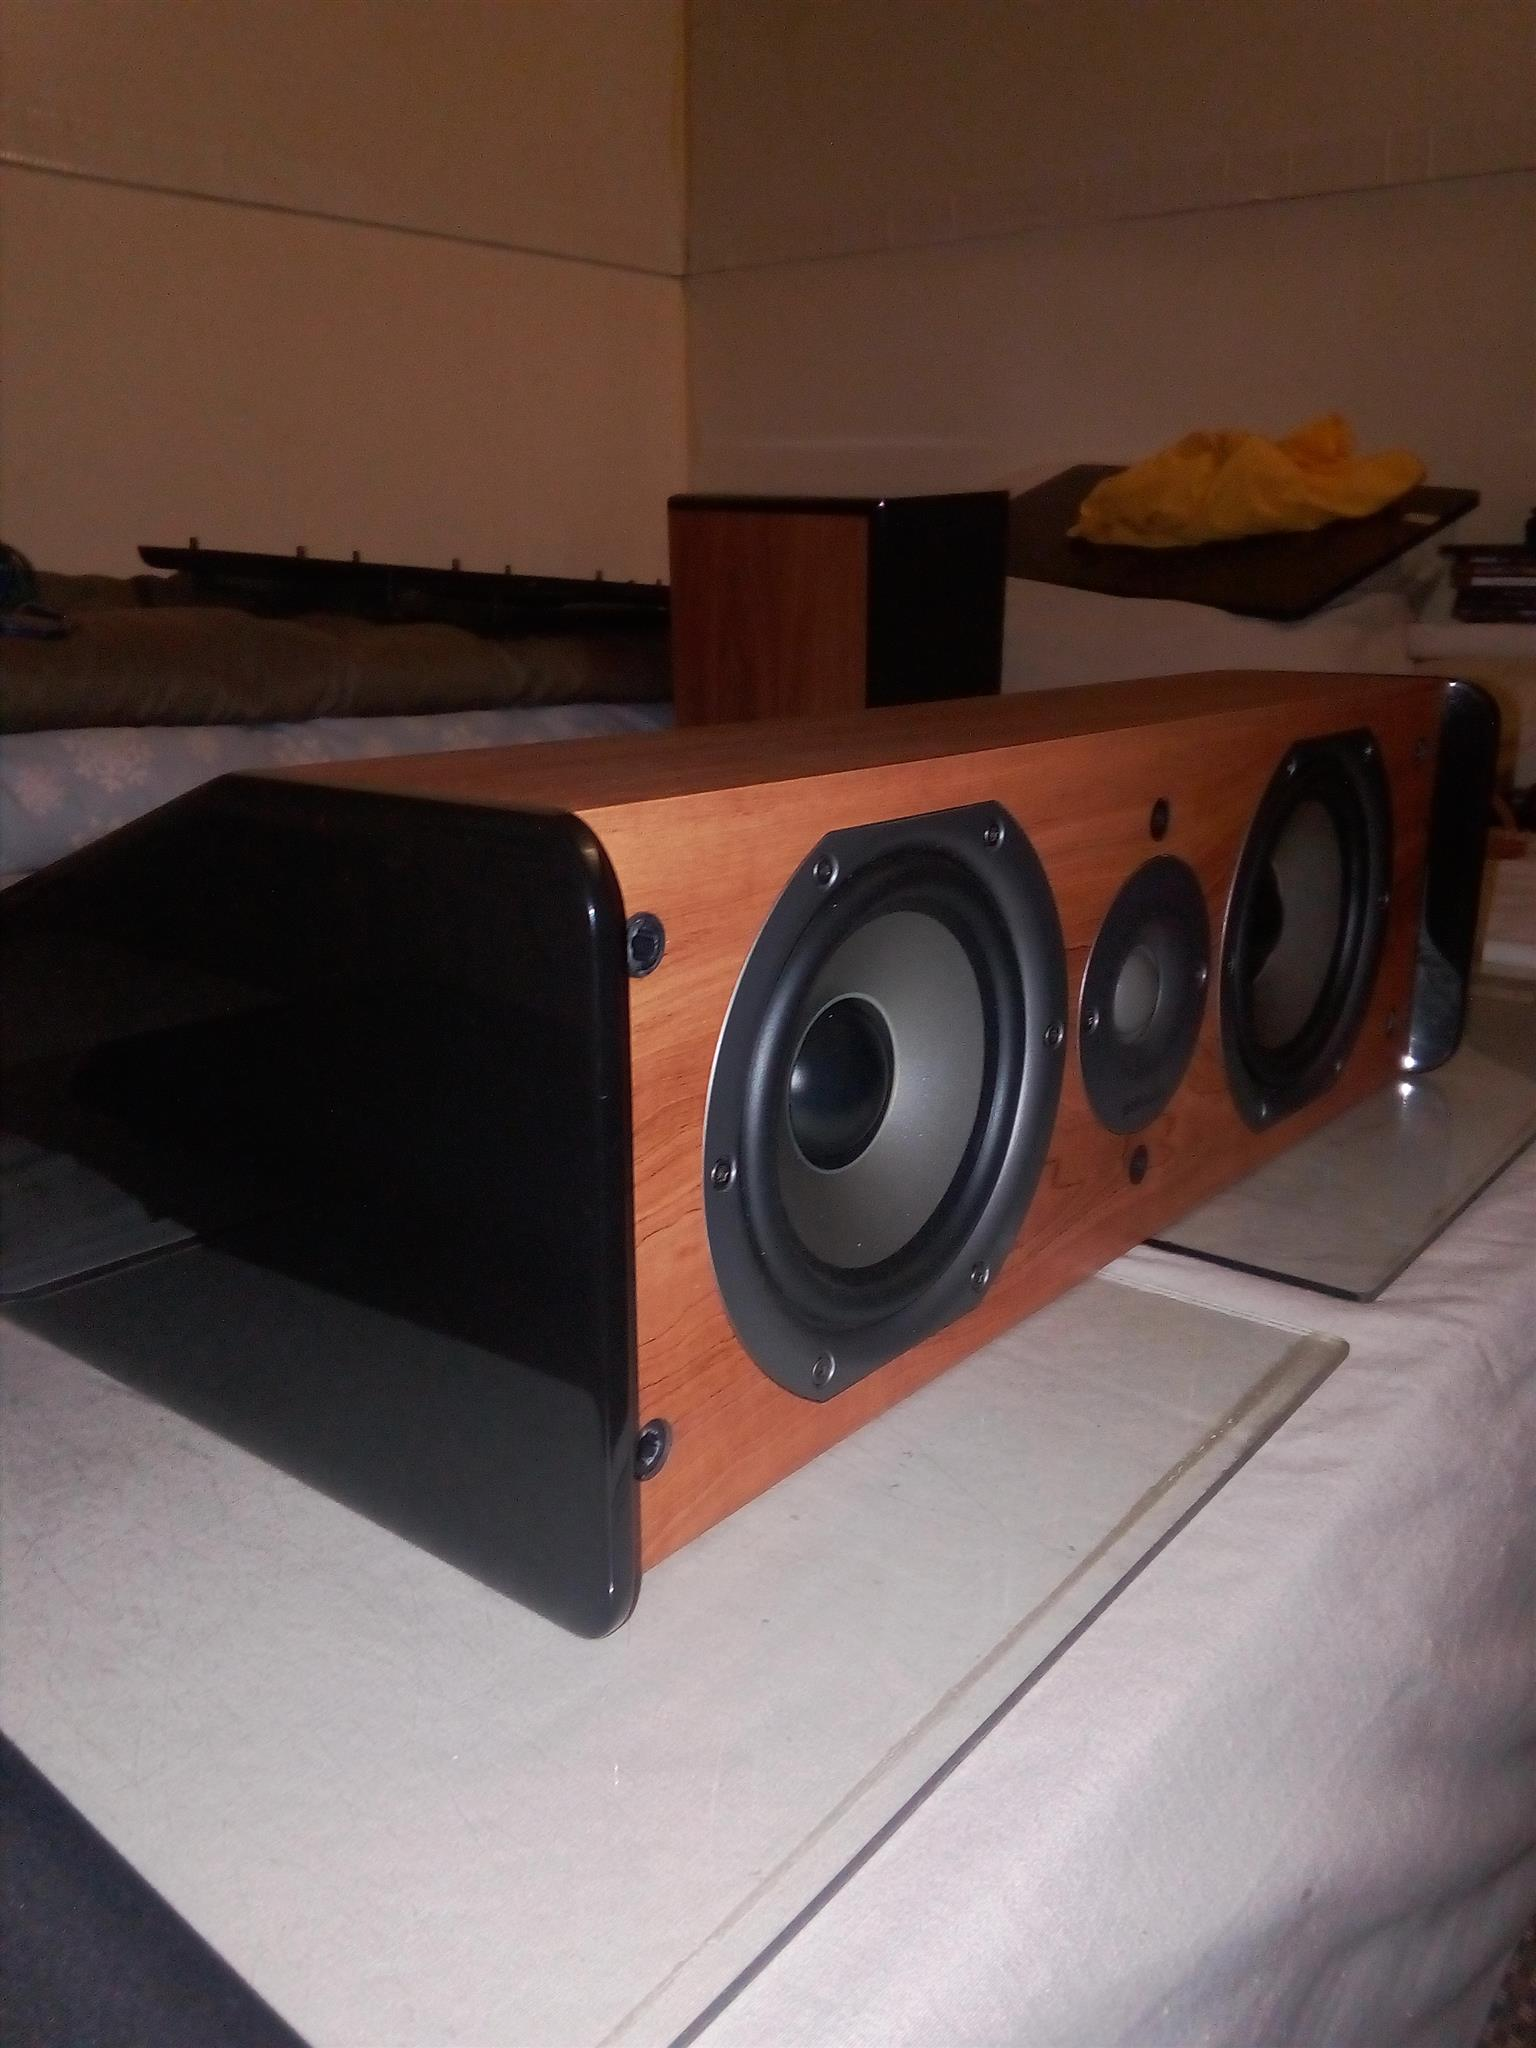 Polkaudio X5 very high end powerful speakers.In immaculate showroom condition.